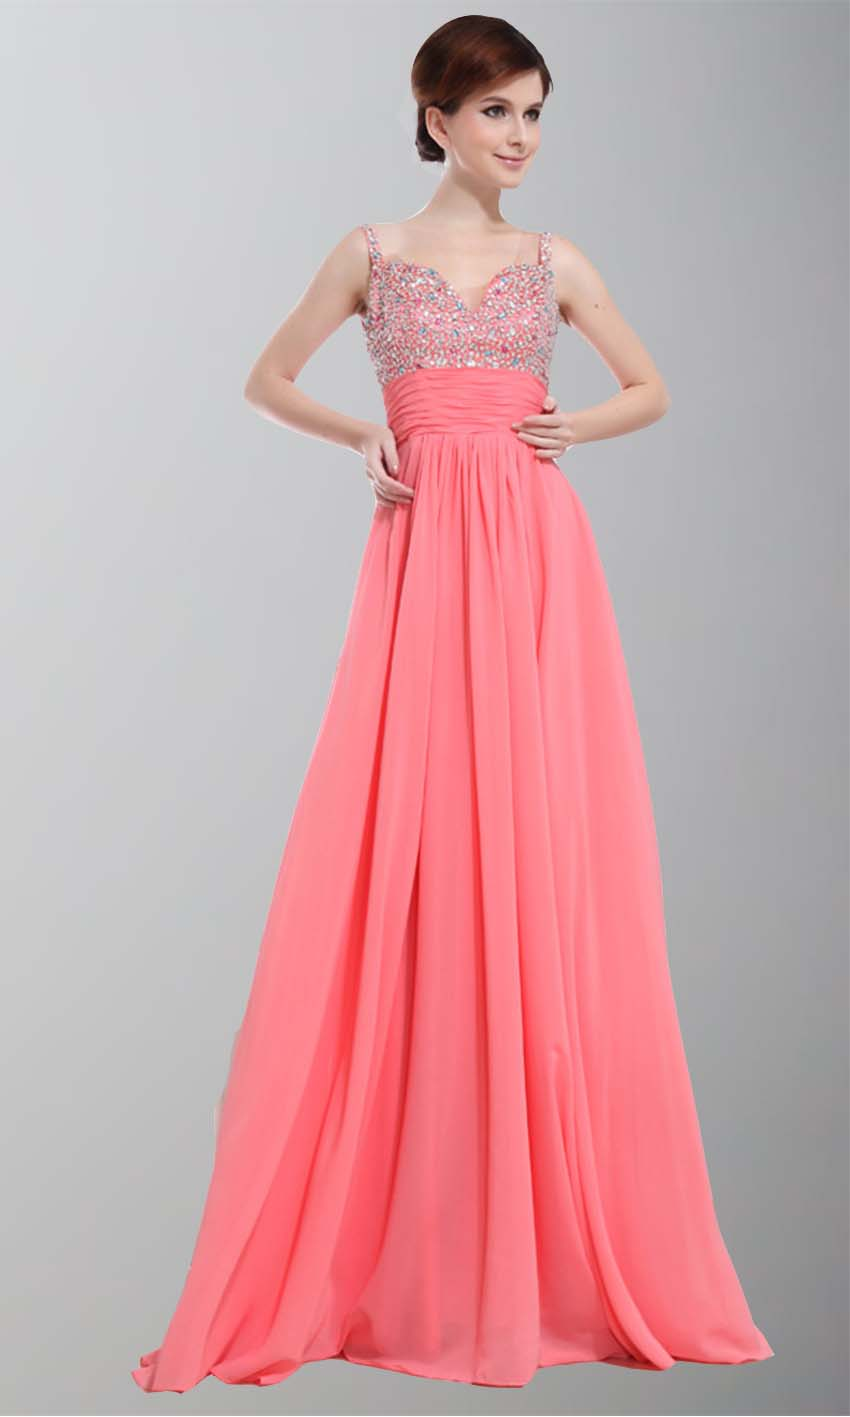 Gorgeous Spagetti Aline Sequin Long Prom Dresses KSP261 [KSP261 ...